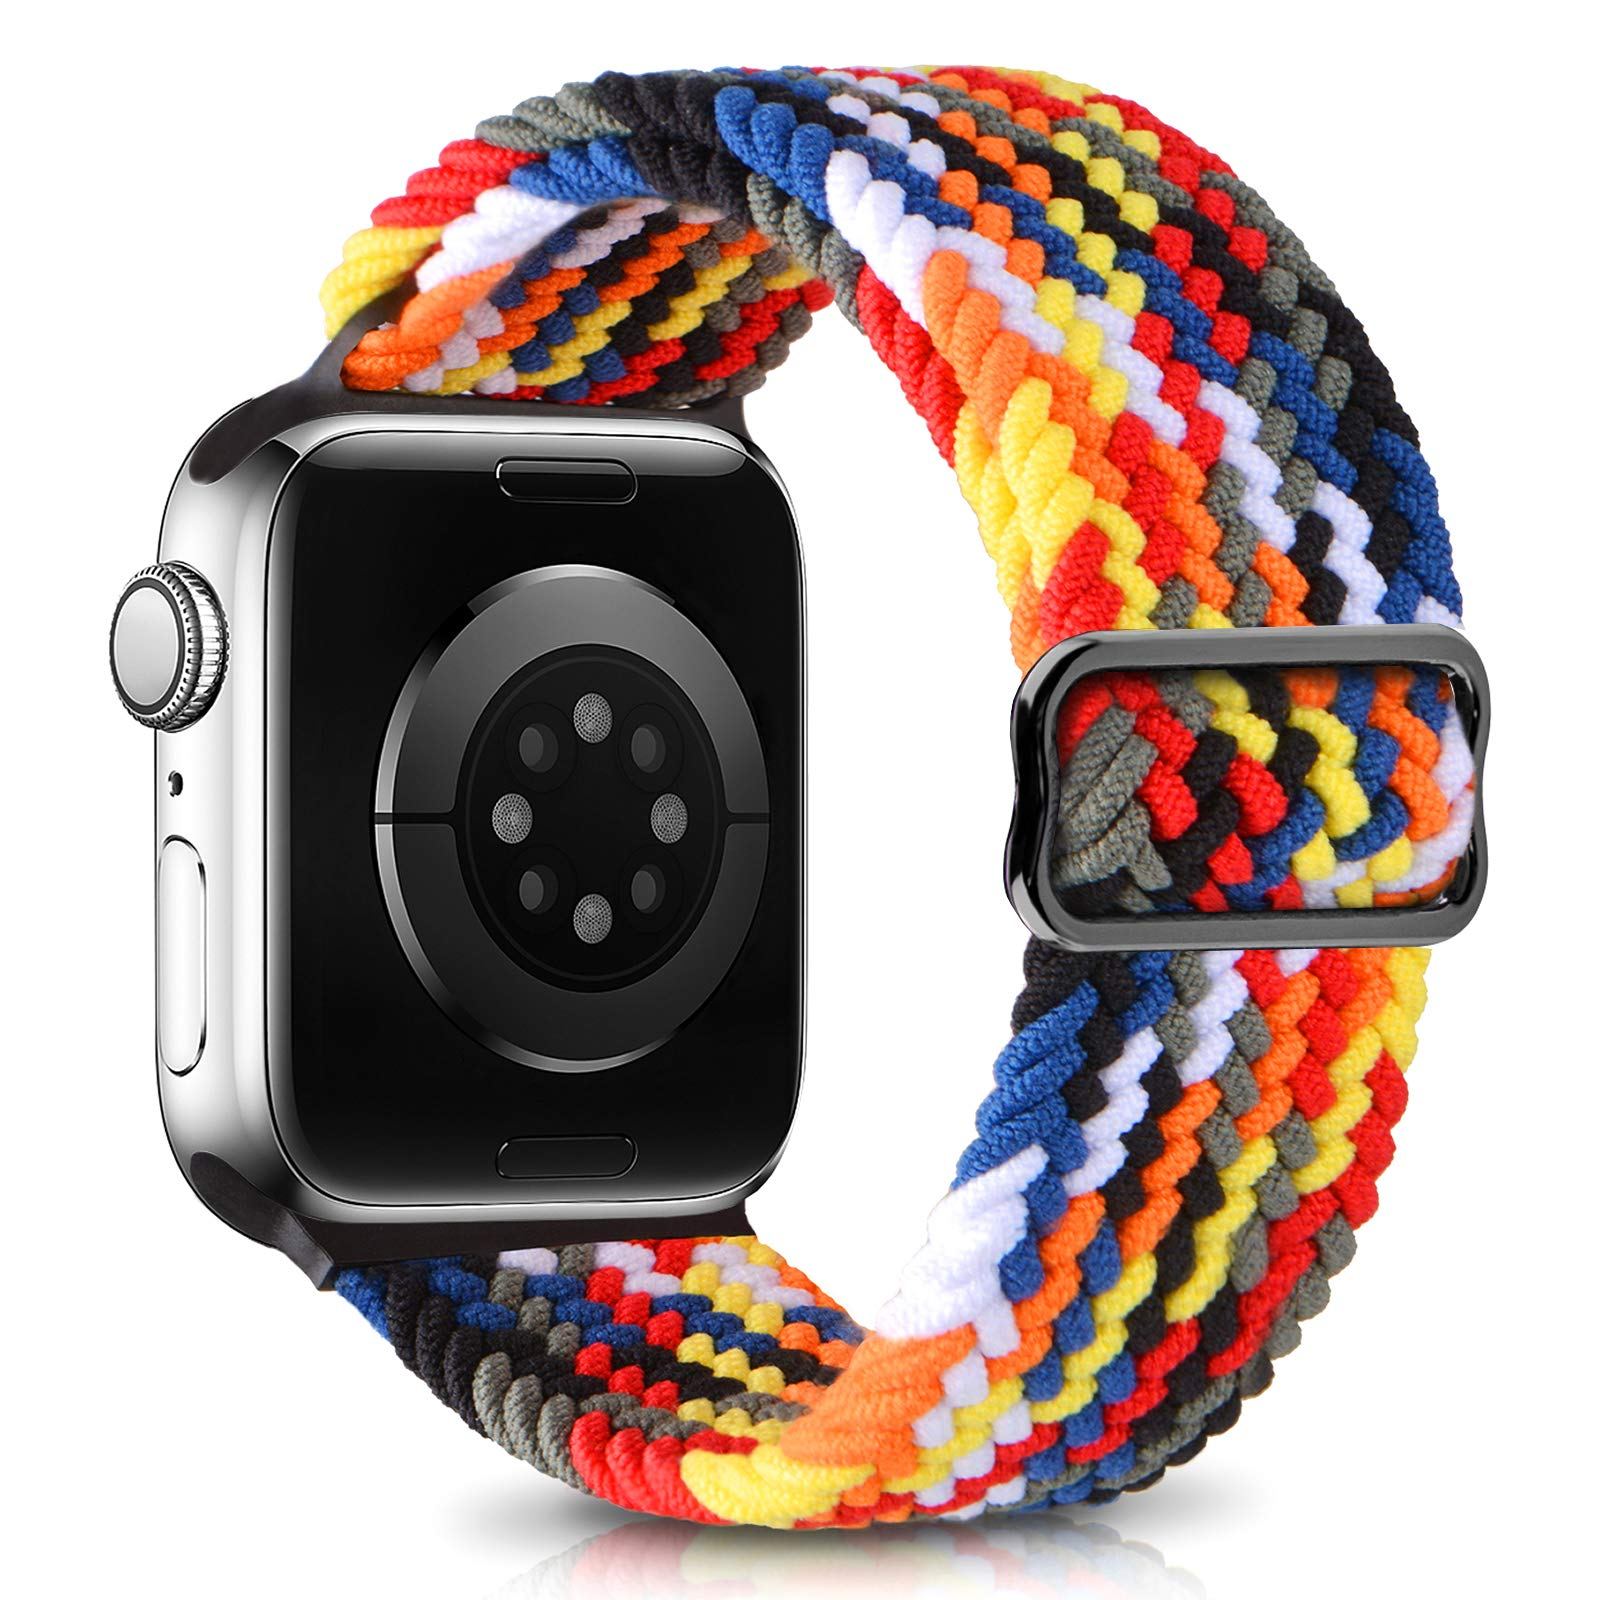 EOMTAM Adjustable Braided Sport Elastics Bands Compatible with Apple Watch Bands 38mm 40mm 42mm 44mm Women Men, Streatch Solo Loop Strap Compatible for iWatch Series 6 5 4 3 2 1 SE(PATENTS Pending)